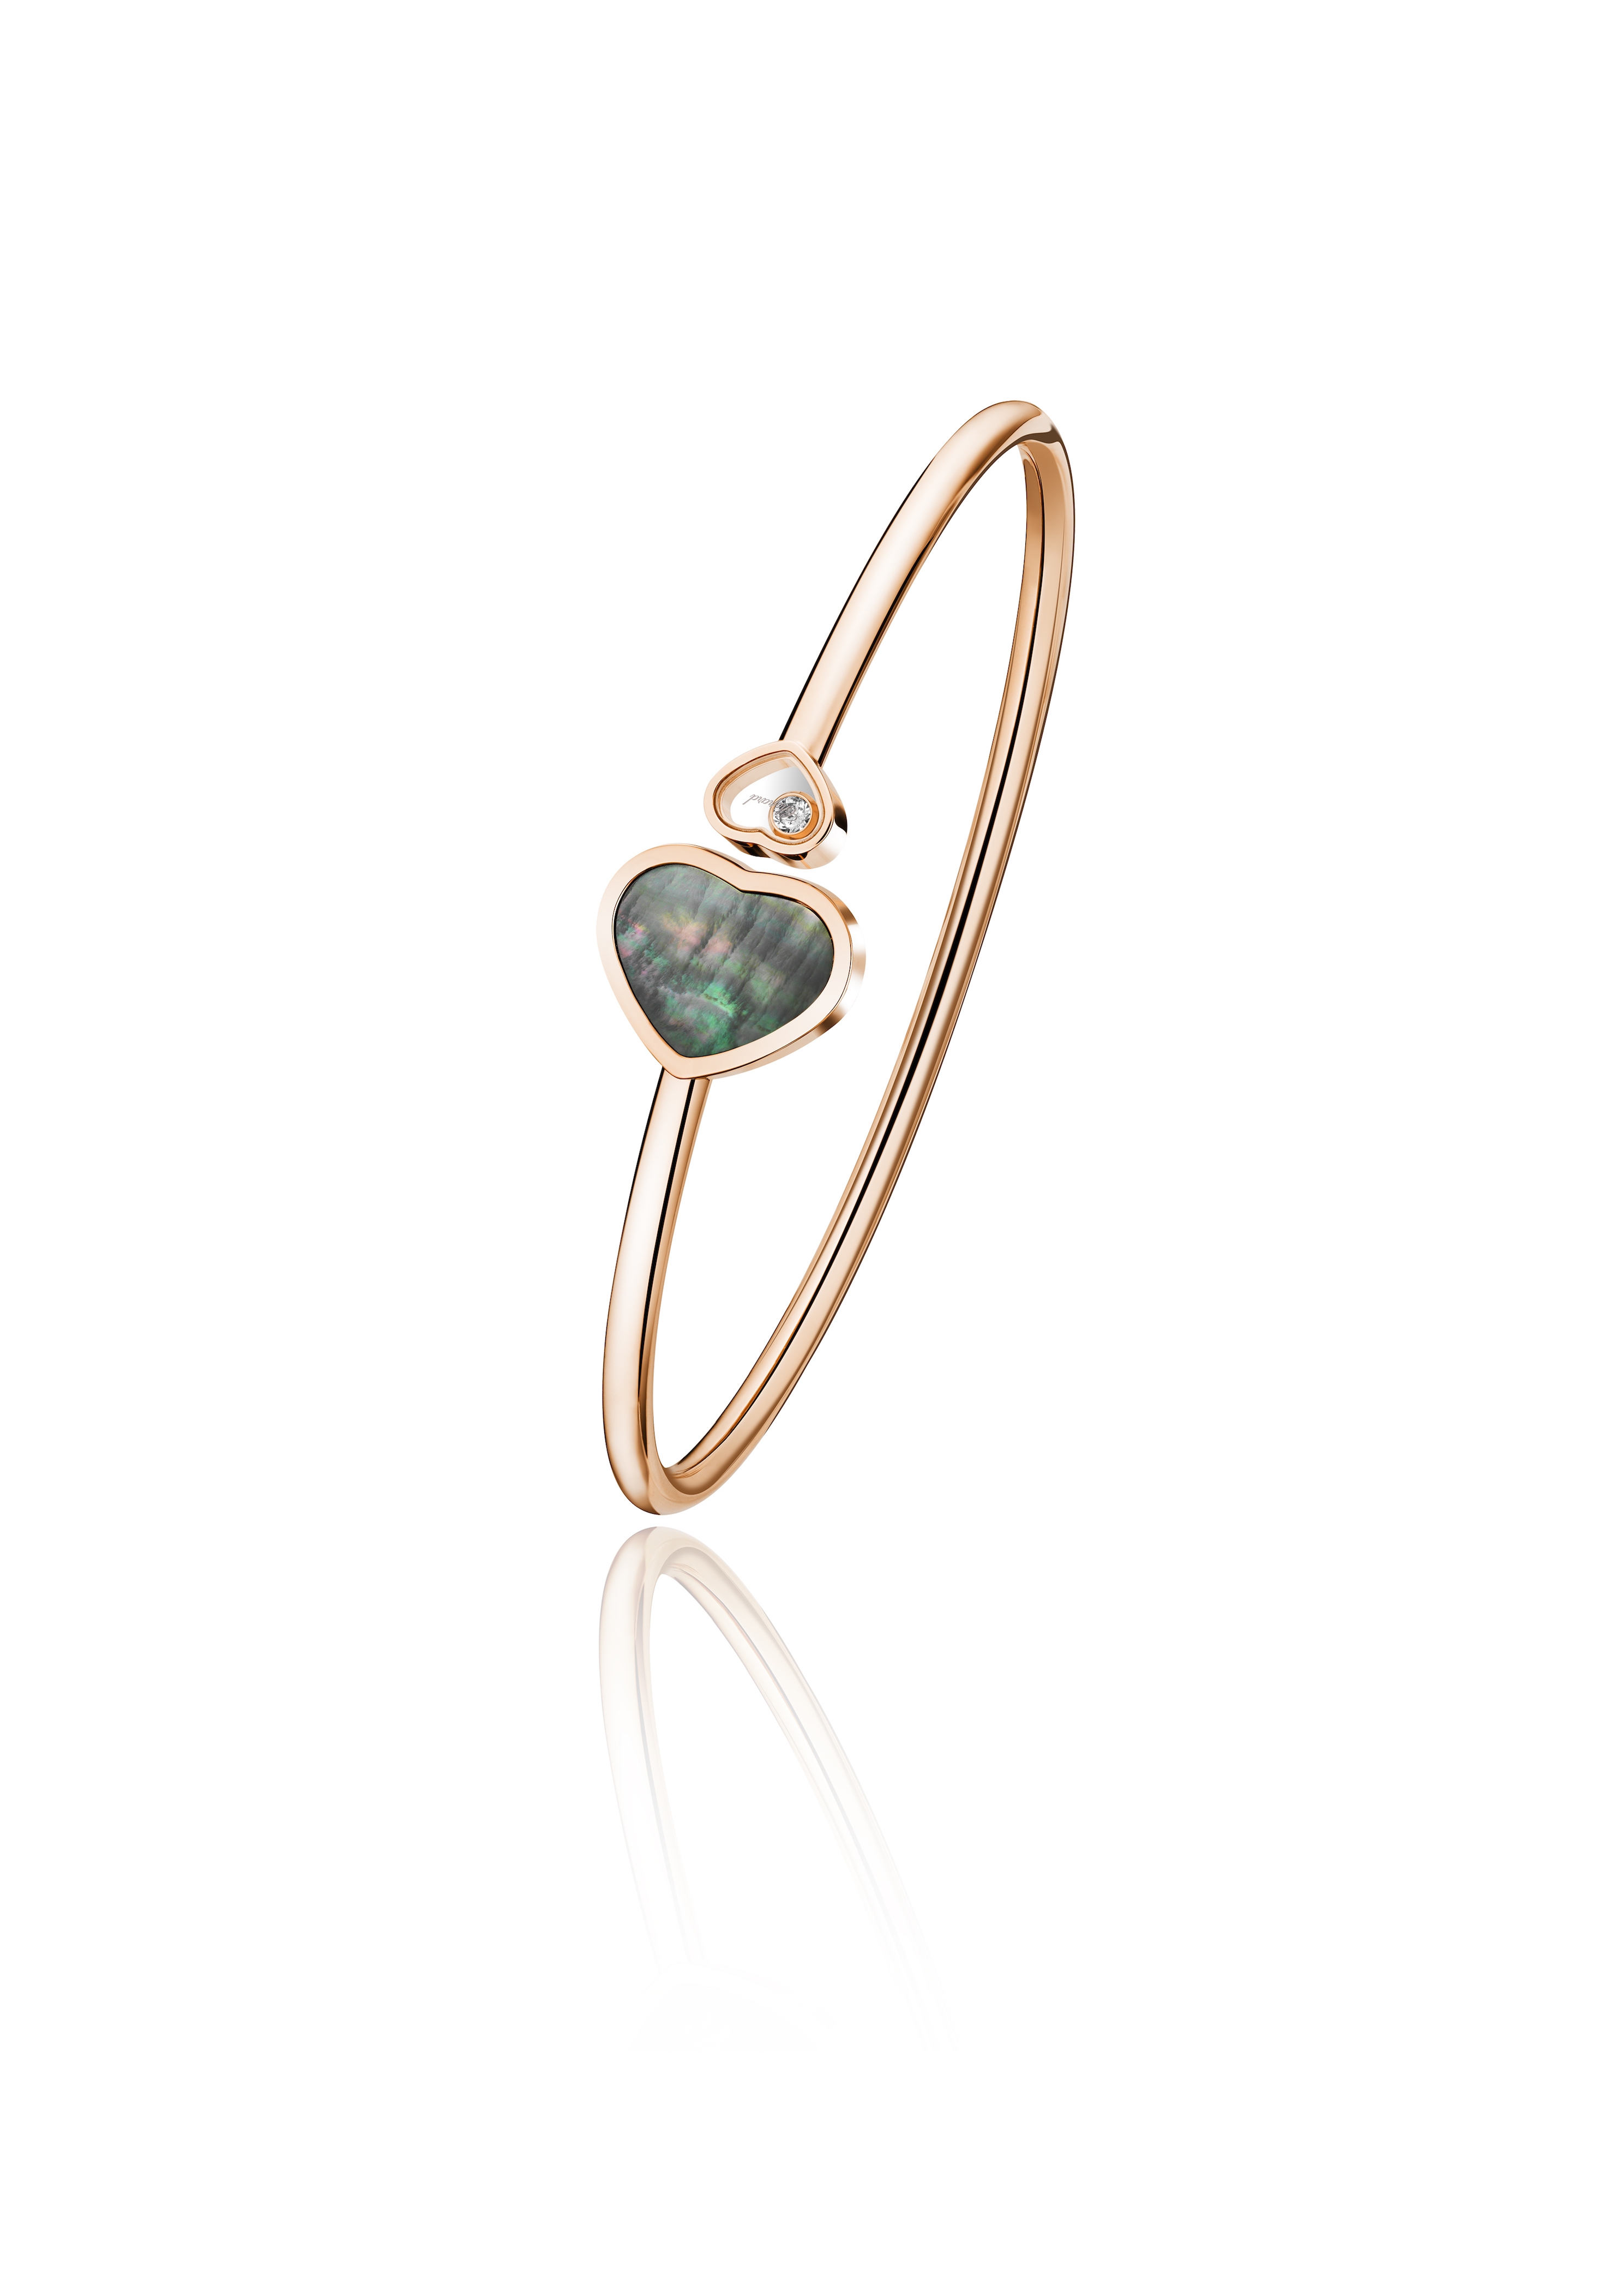 Happy Hearts bangle set with black Tahiitian mother-of-pearl and diamonds. (Photo: Courtesy of Chopard)